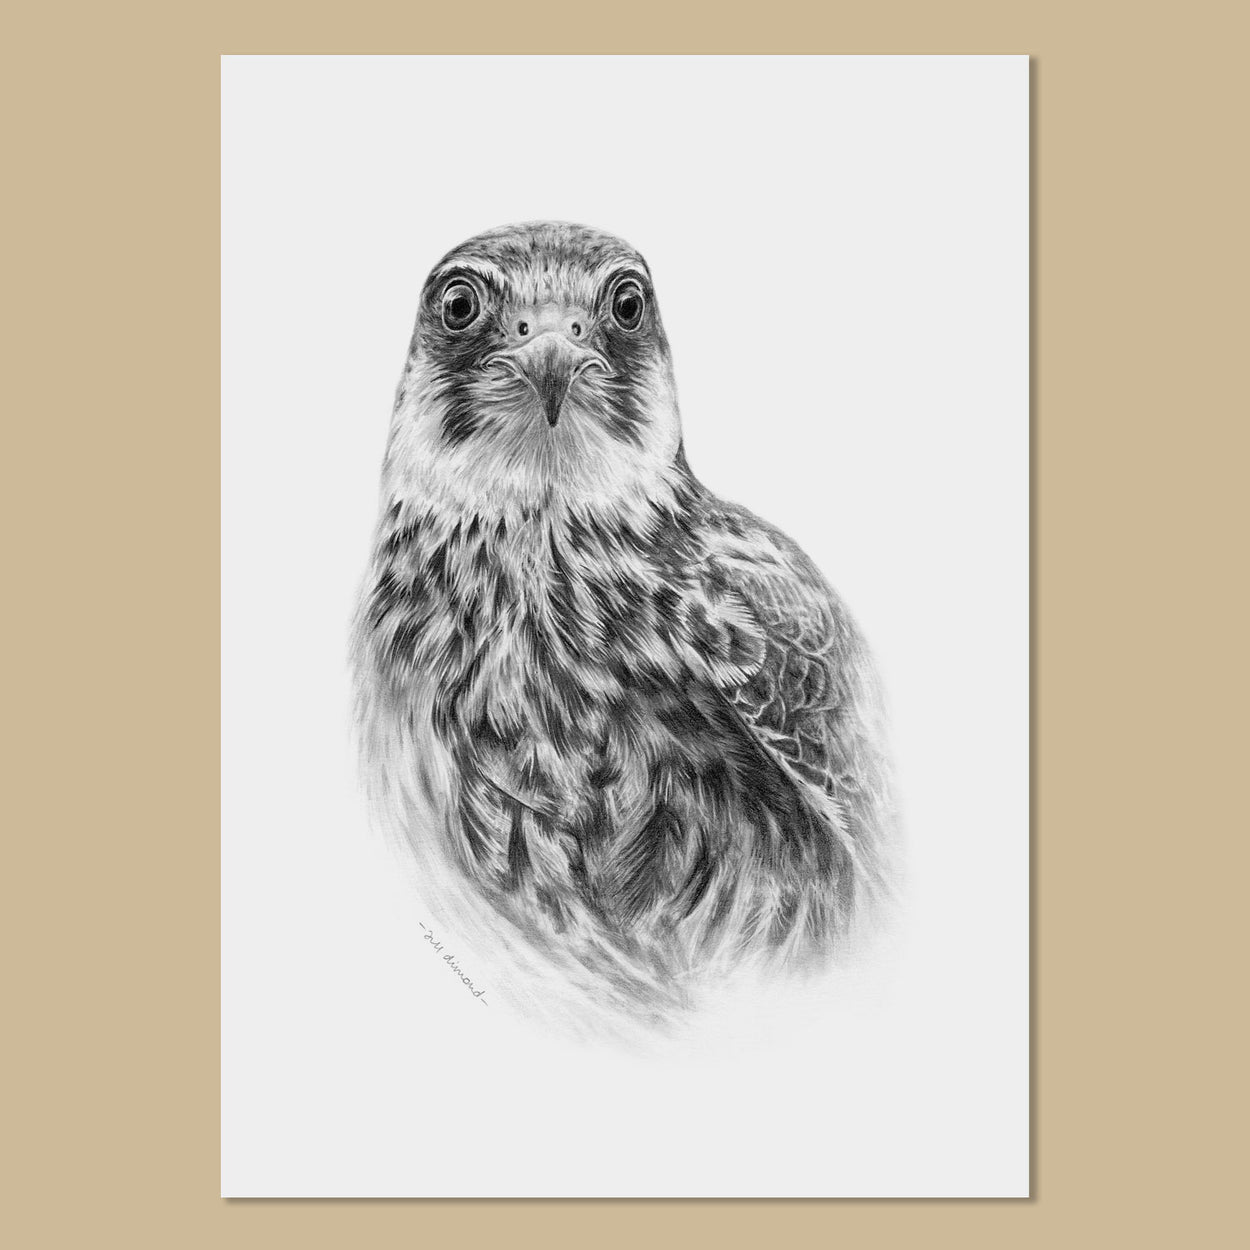 Hobby Art Prints - The Thriving Wild